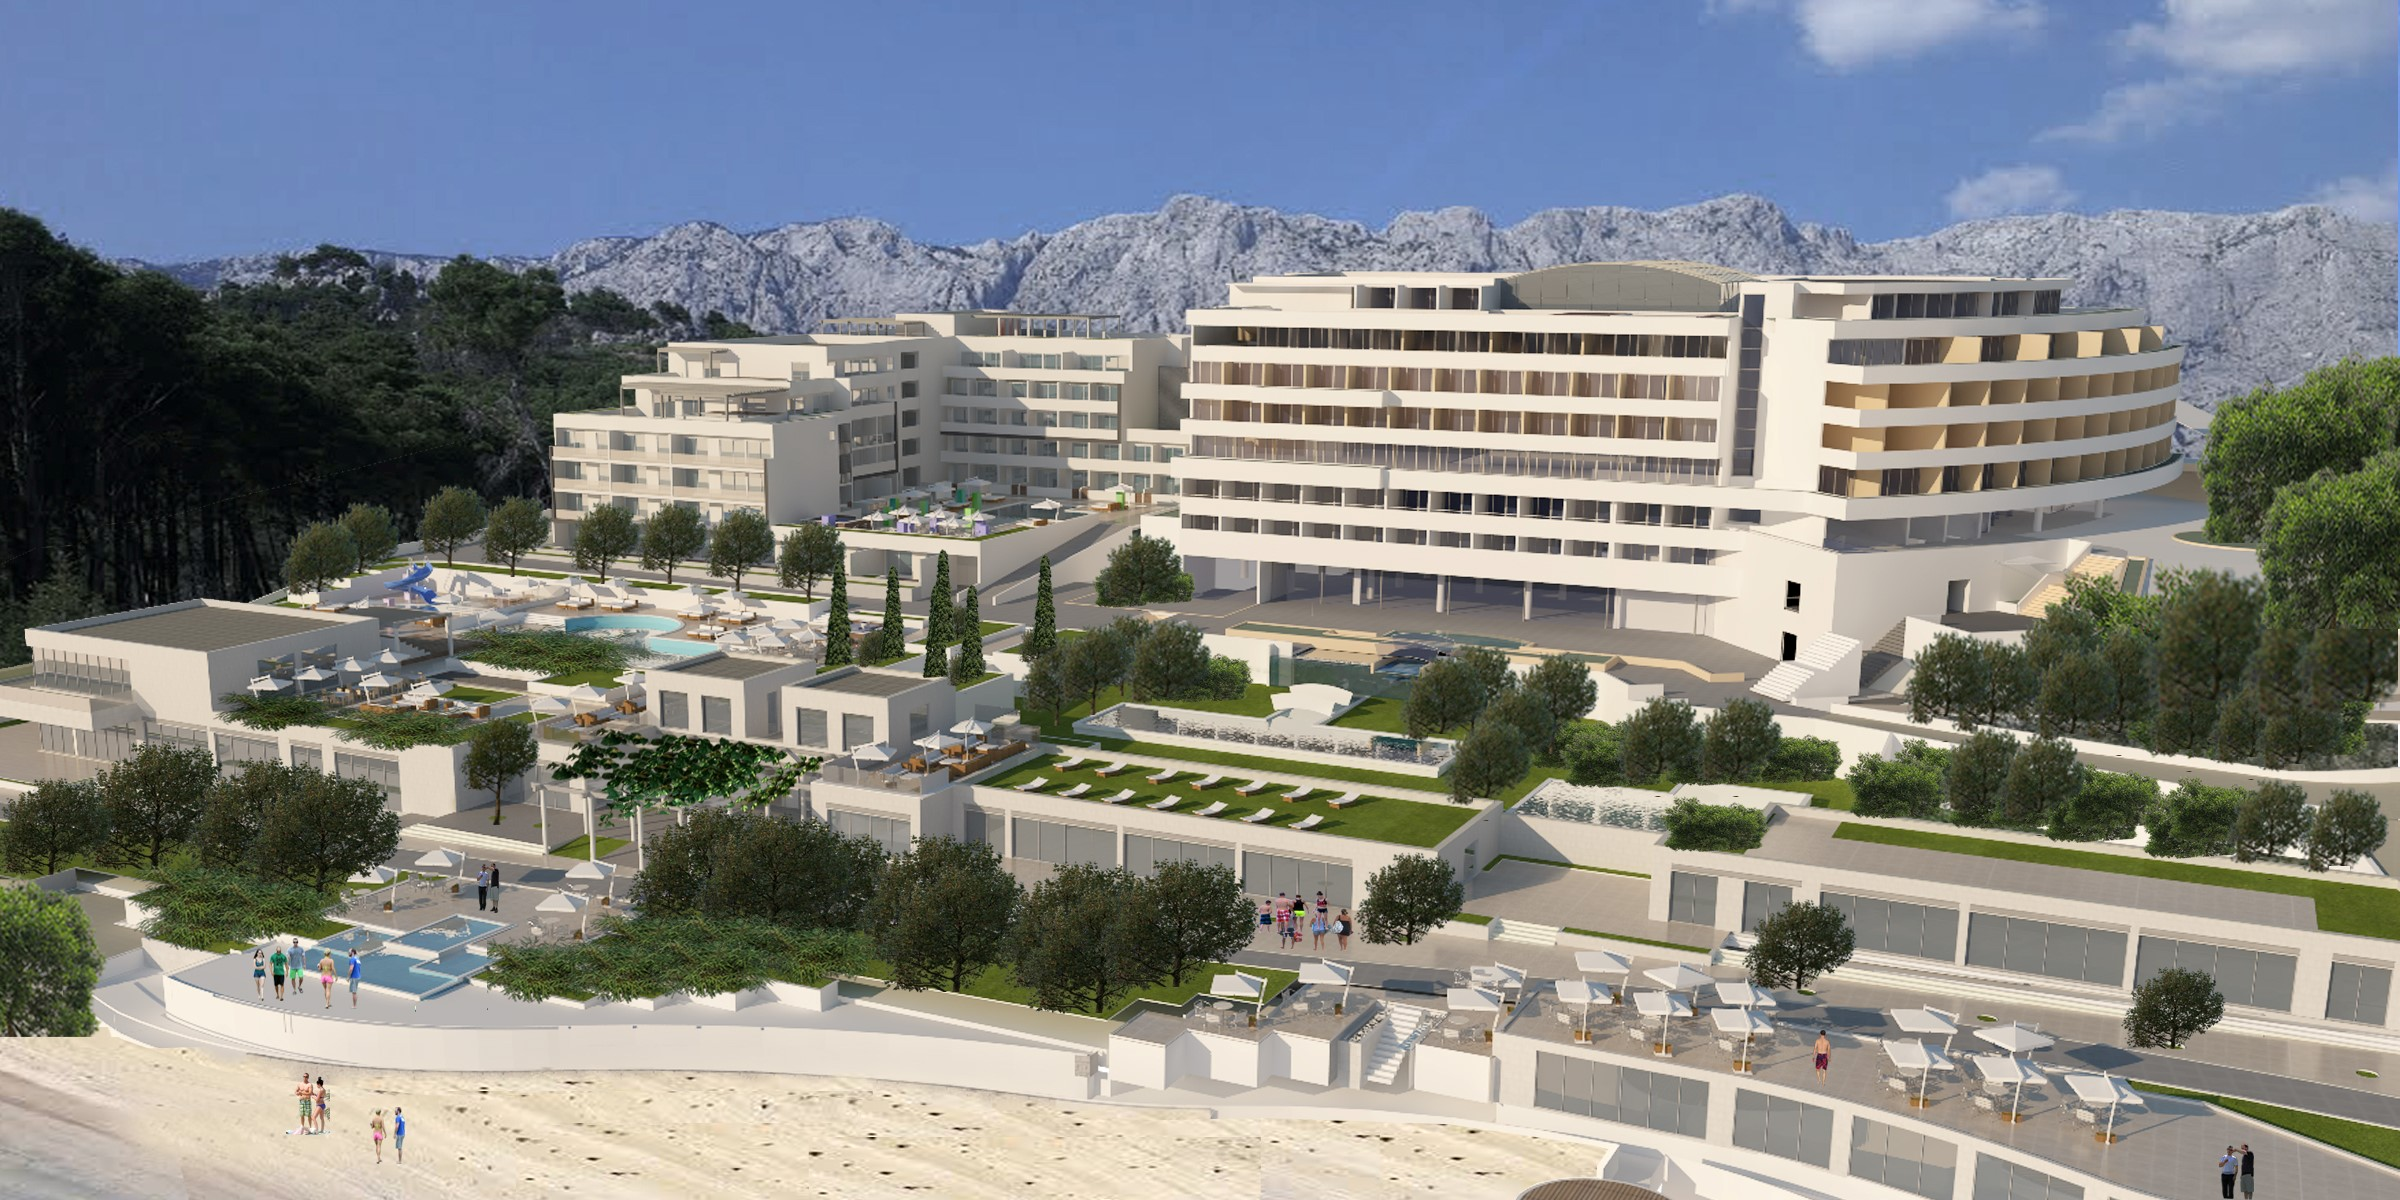 Photos New 50 Million Hotel To Open On Dalmatian Coast